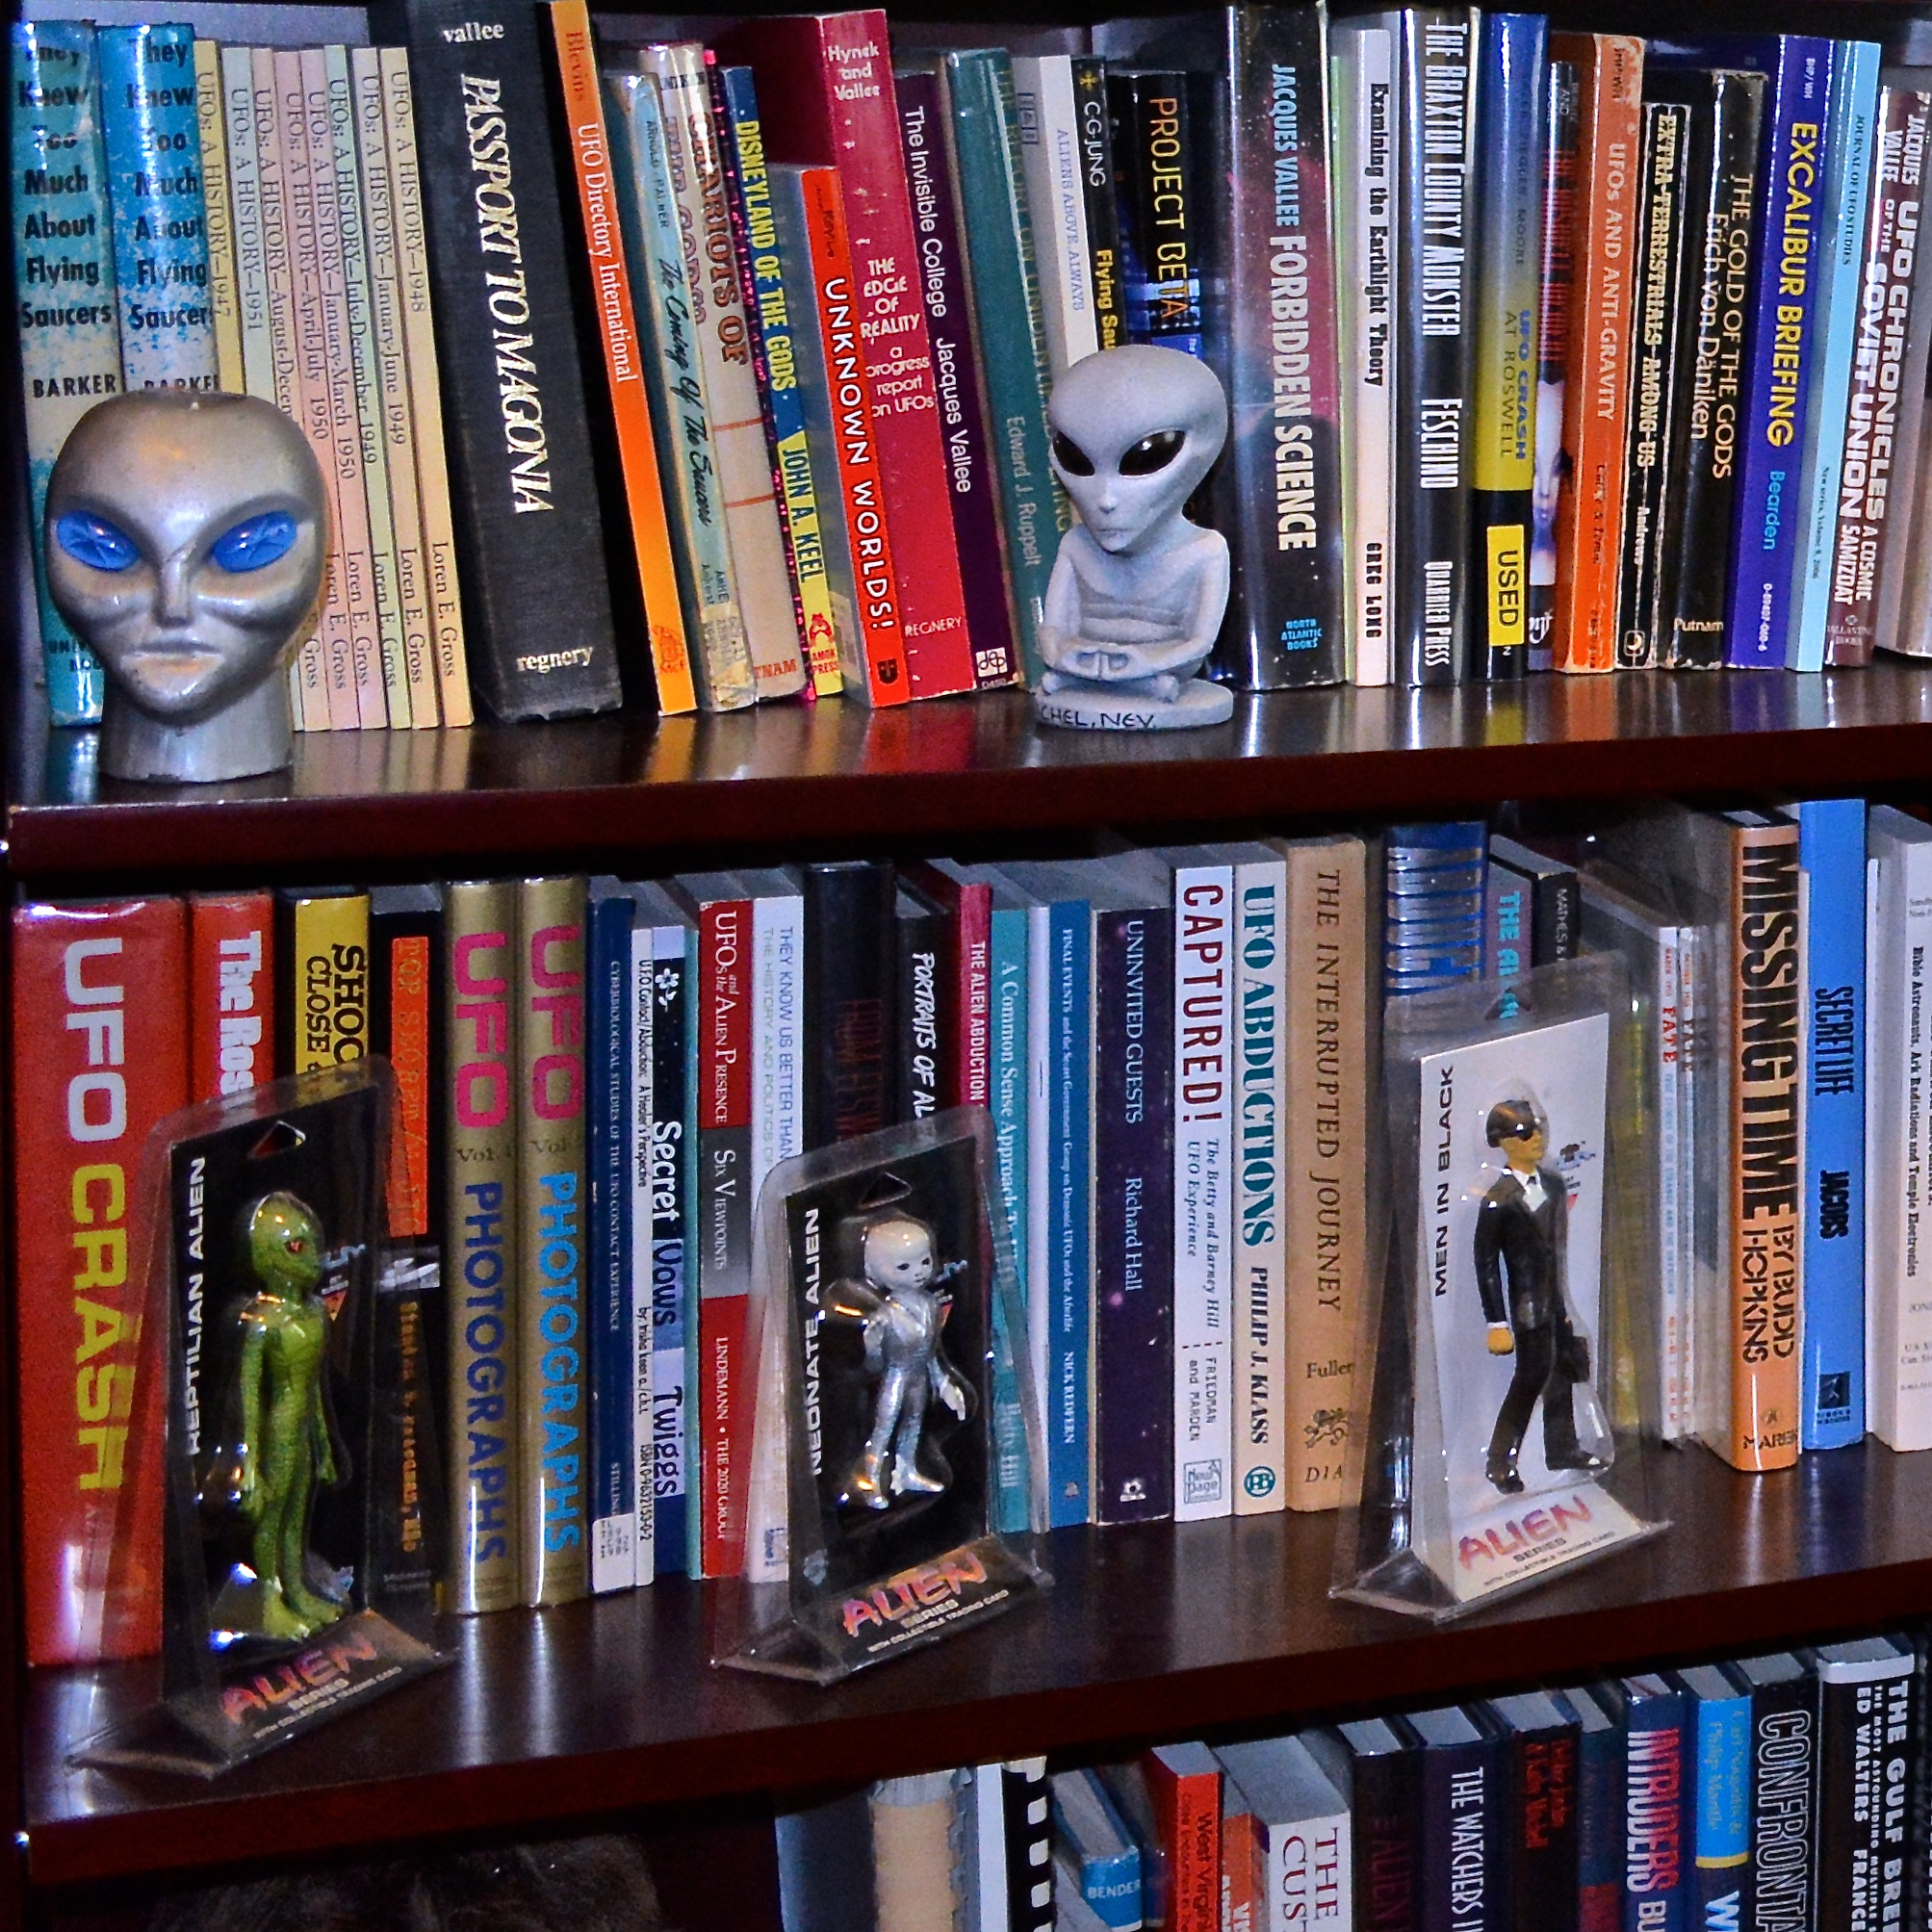 A selection of paranormal-themed books and decorations line the shelves of Dr. Bader's office at Chapman University.